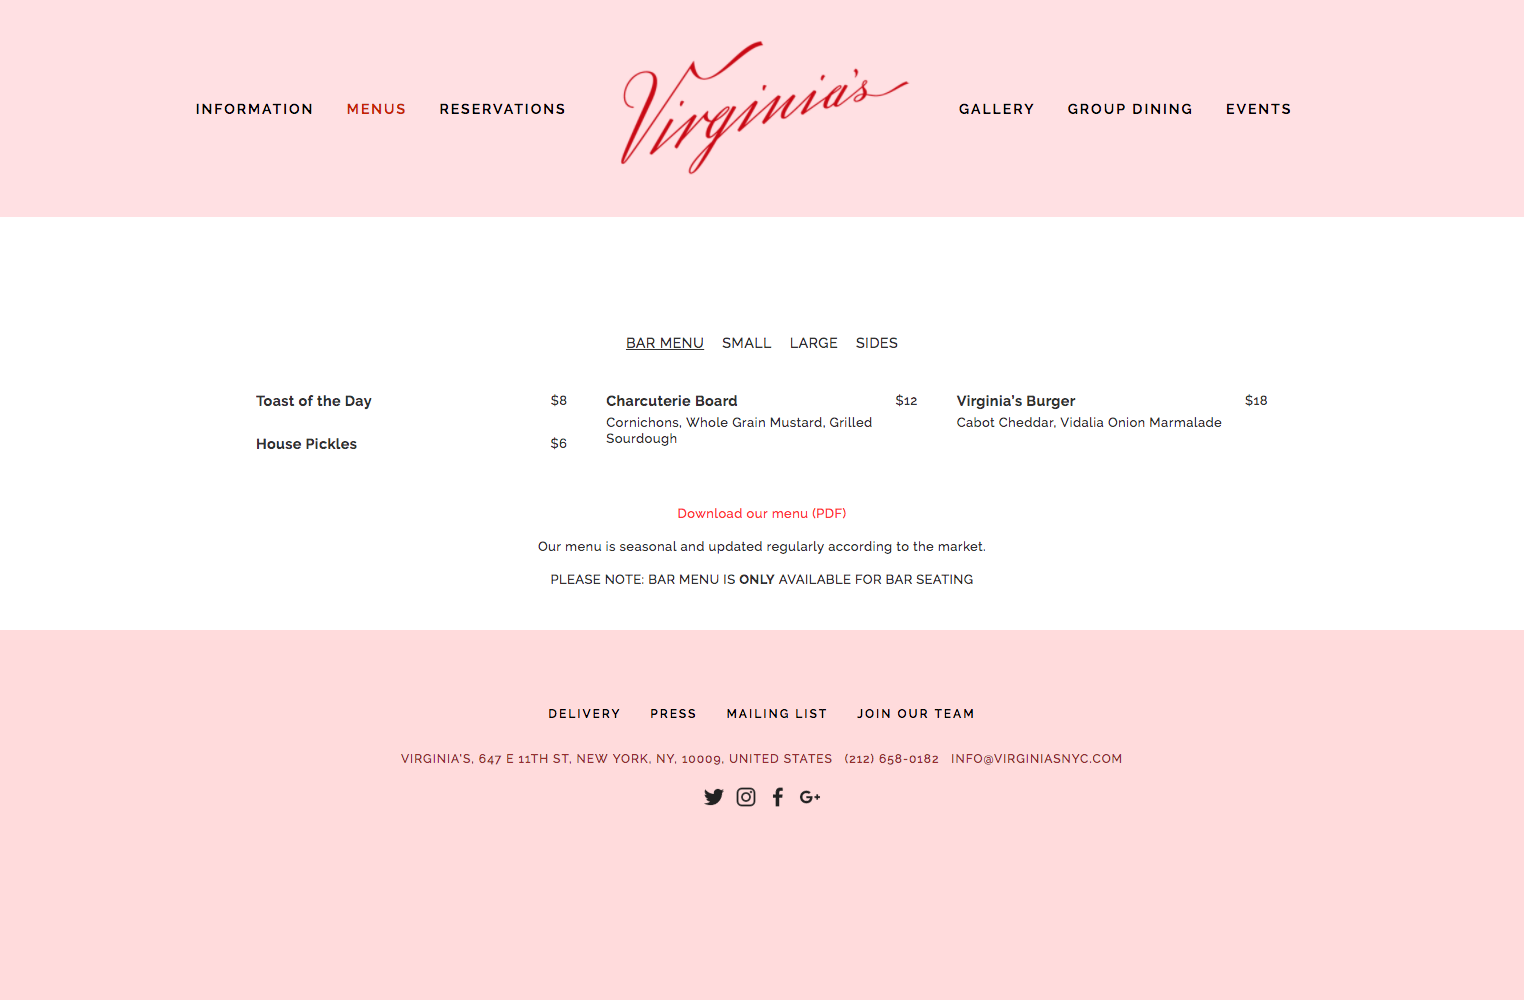 Virginia's website (http://www.virginiasnyc.com/) features an easy to find menu updated regularly.